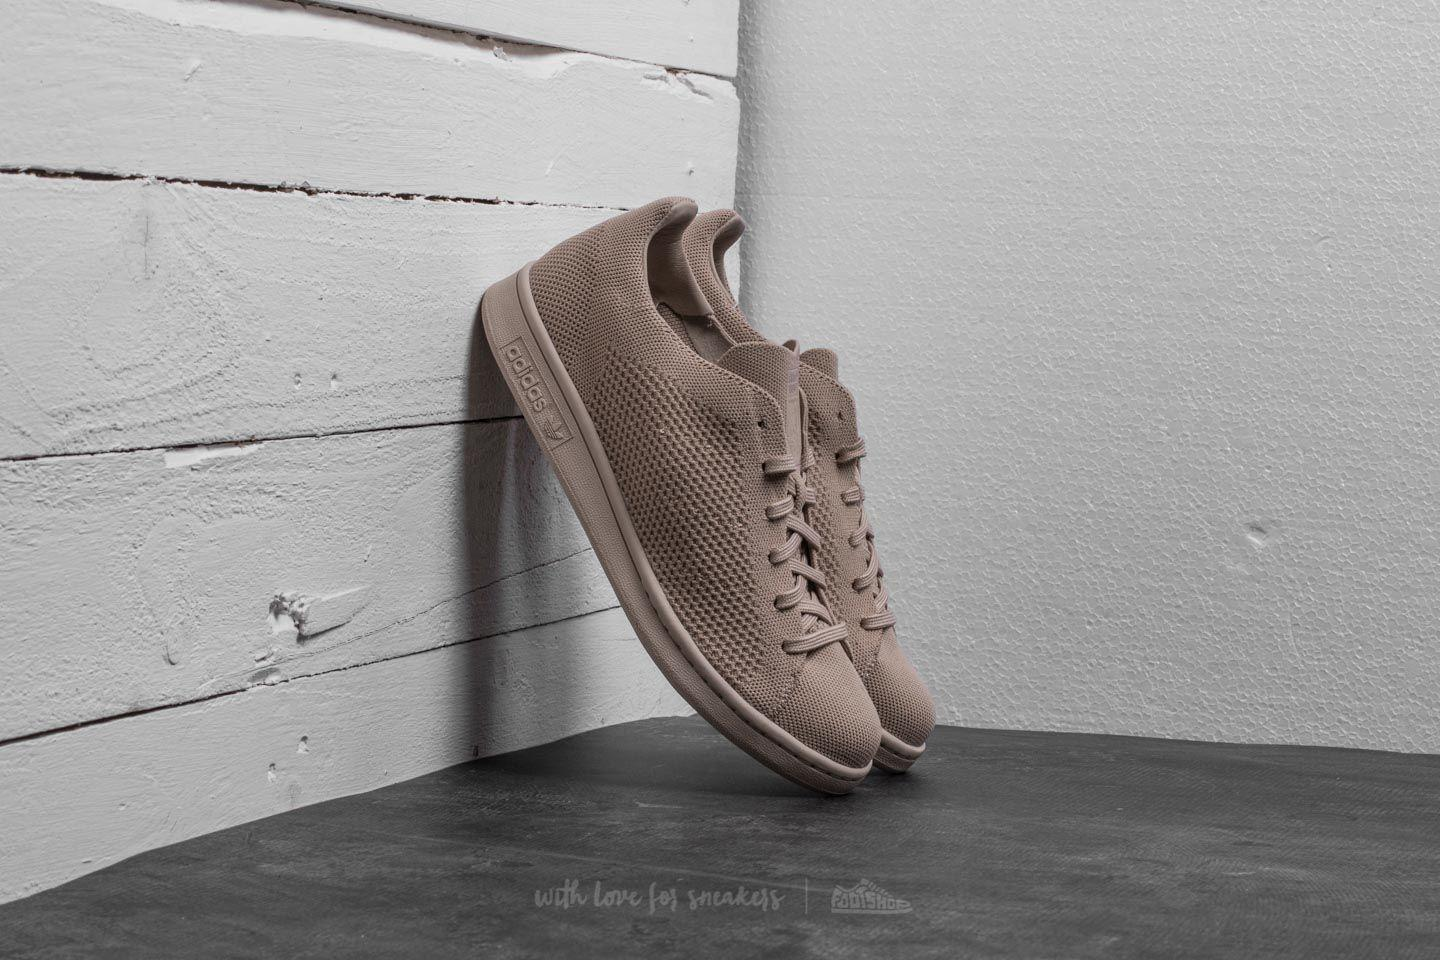 lyst adidas originali adidas stan smith primeknit clay brown / clay